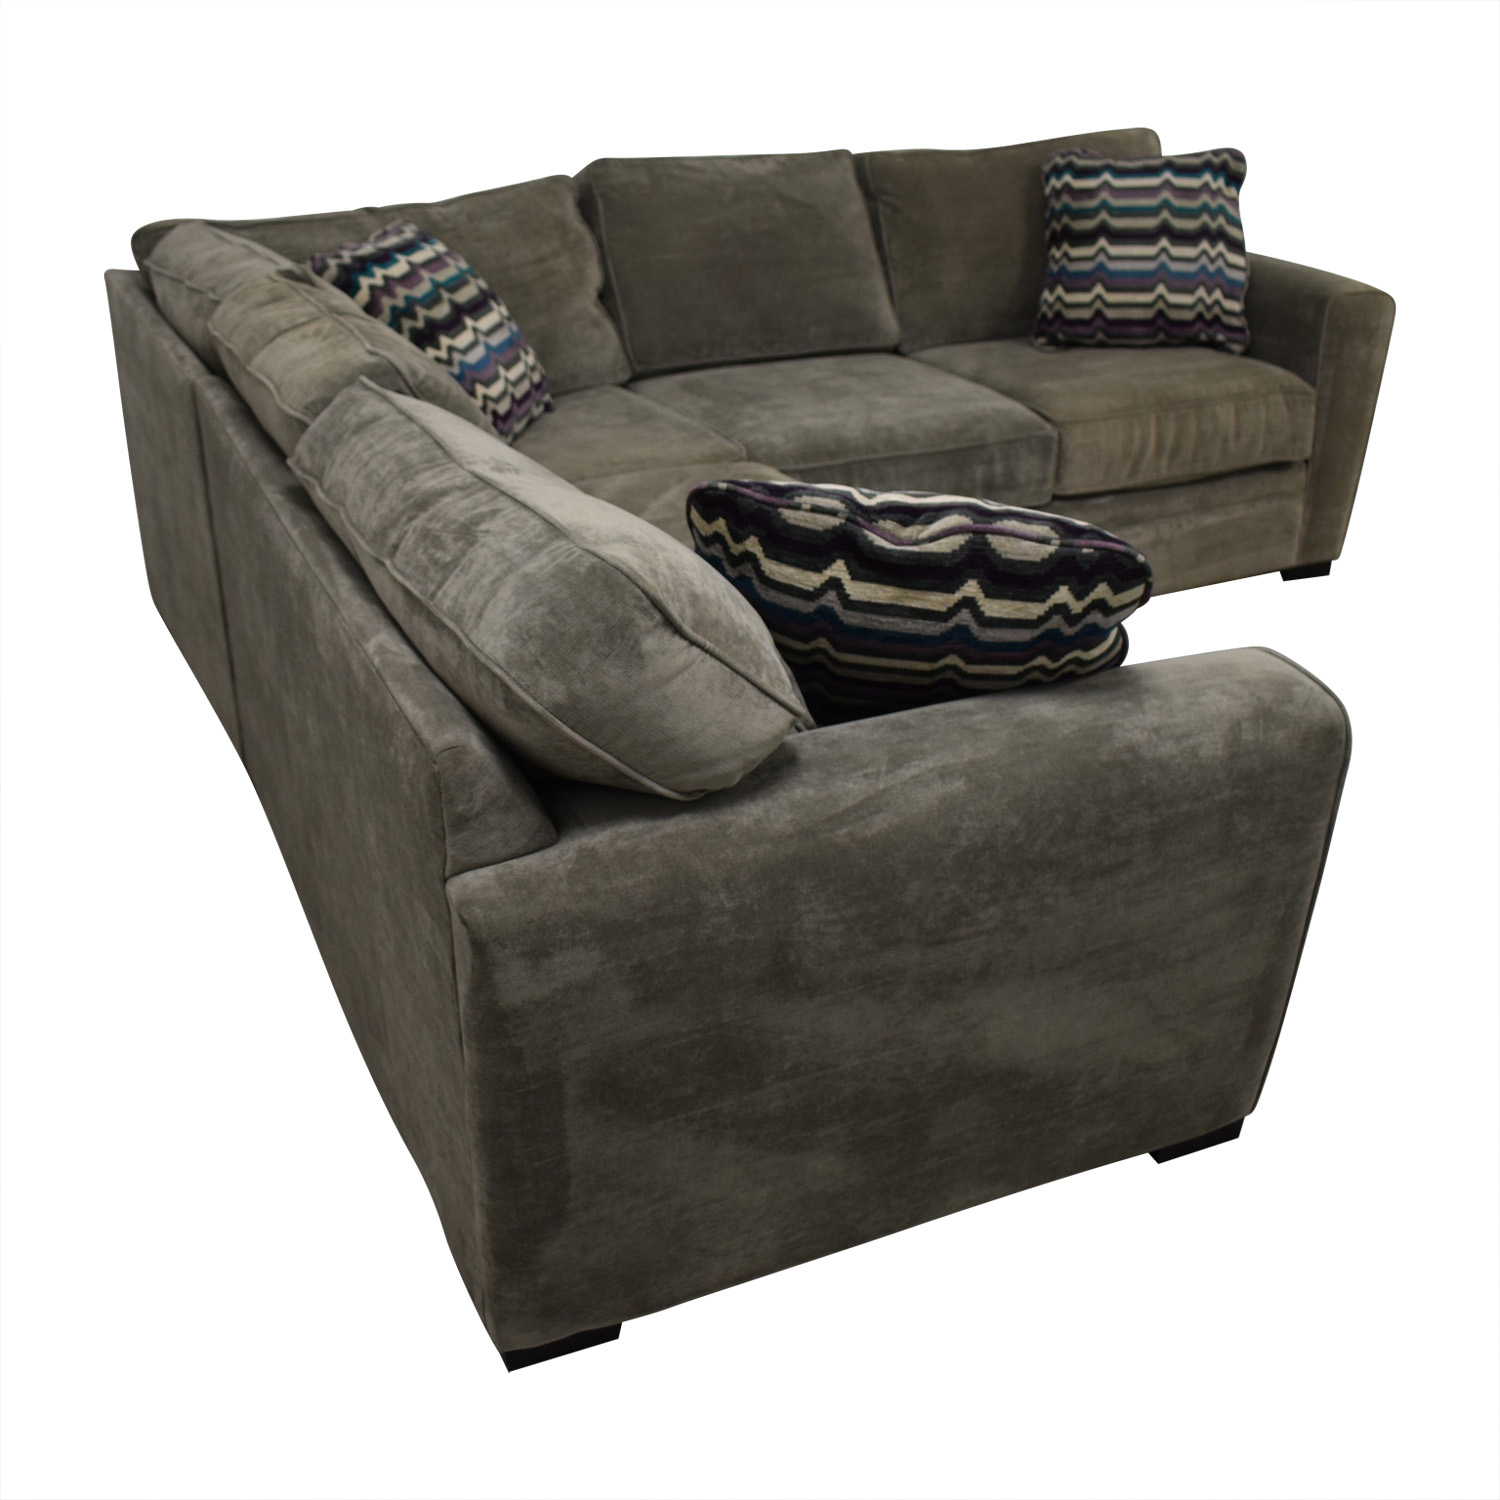 Raymour & Flanigan Raymour & Flanigan Artemis II Gray Microfiber L-Shaped Sectional Sofa Gray